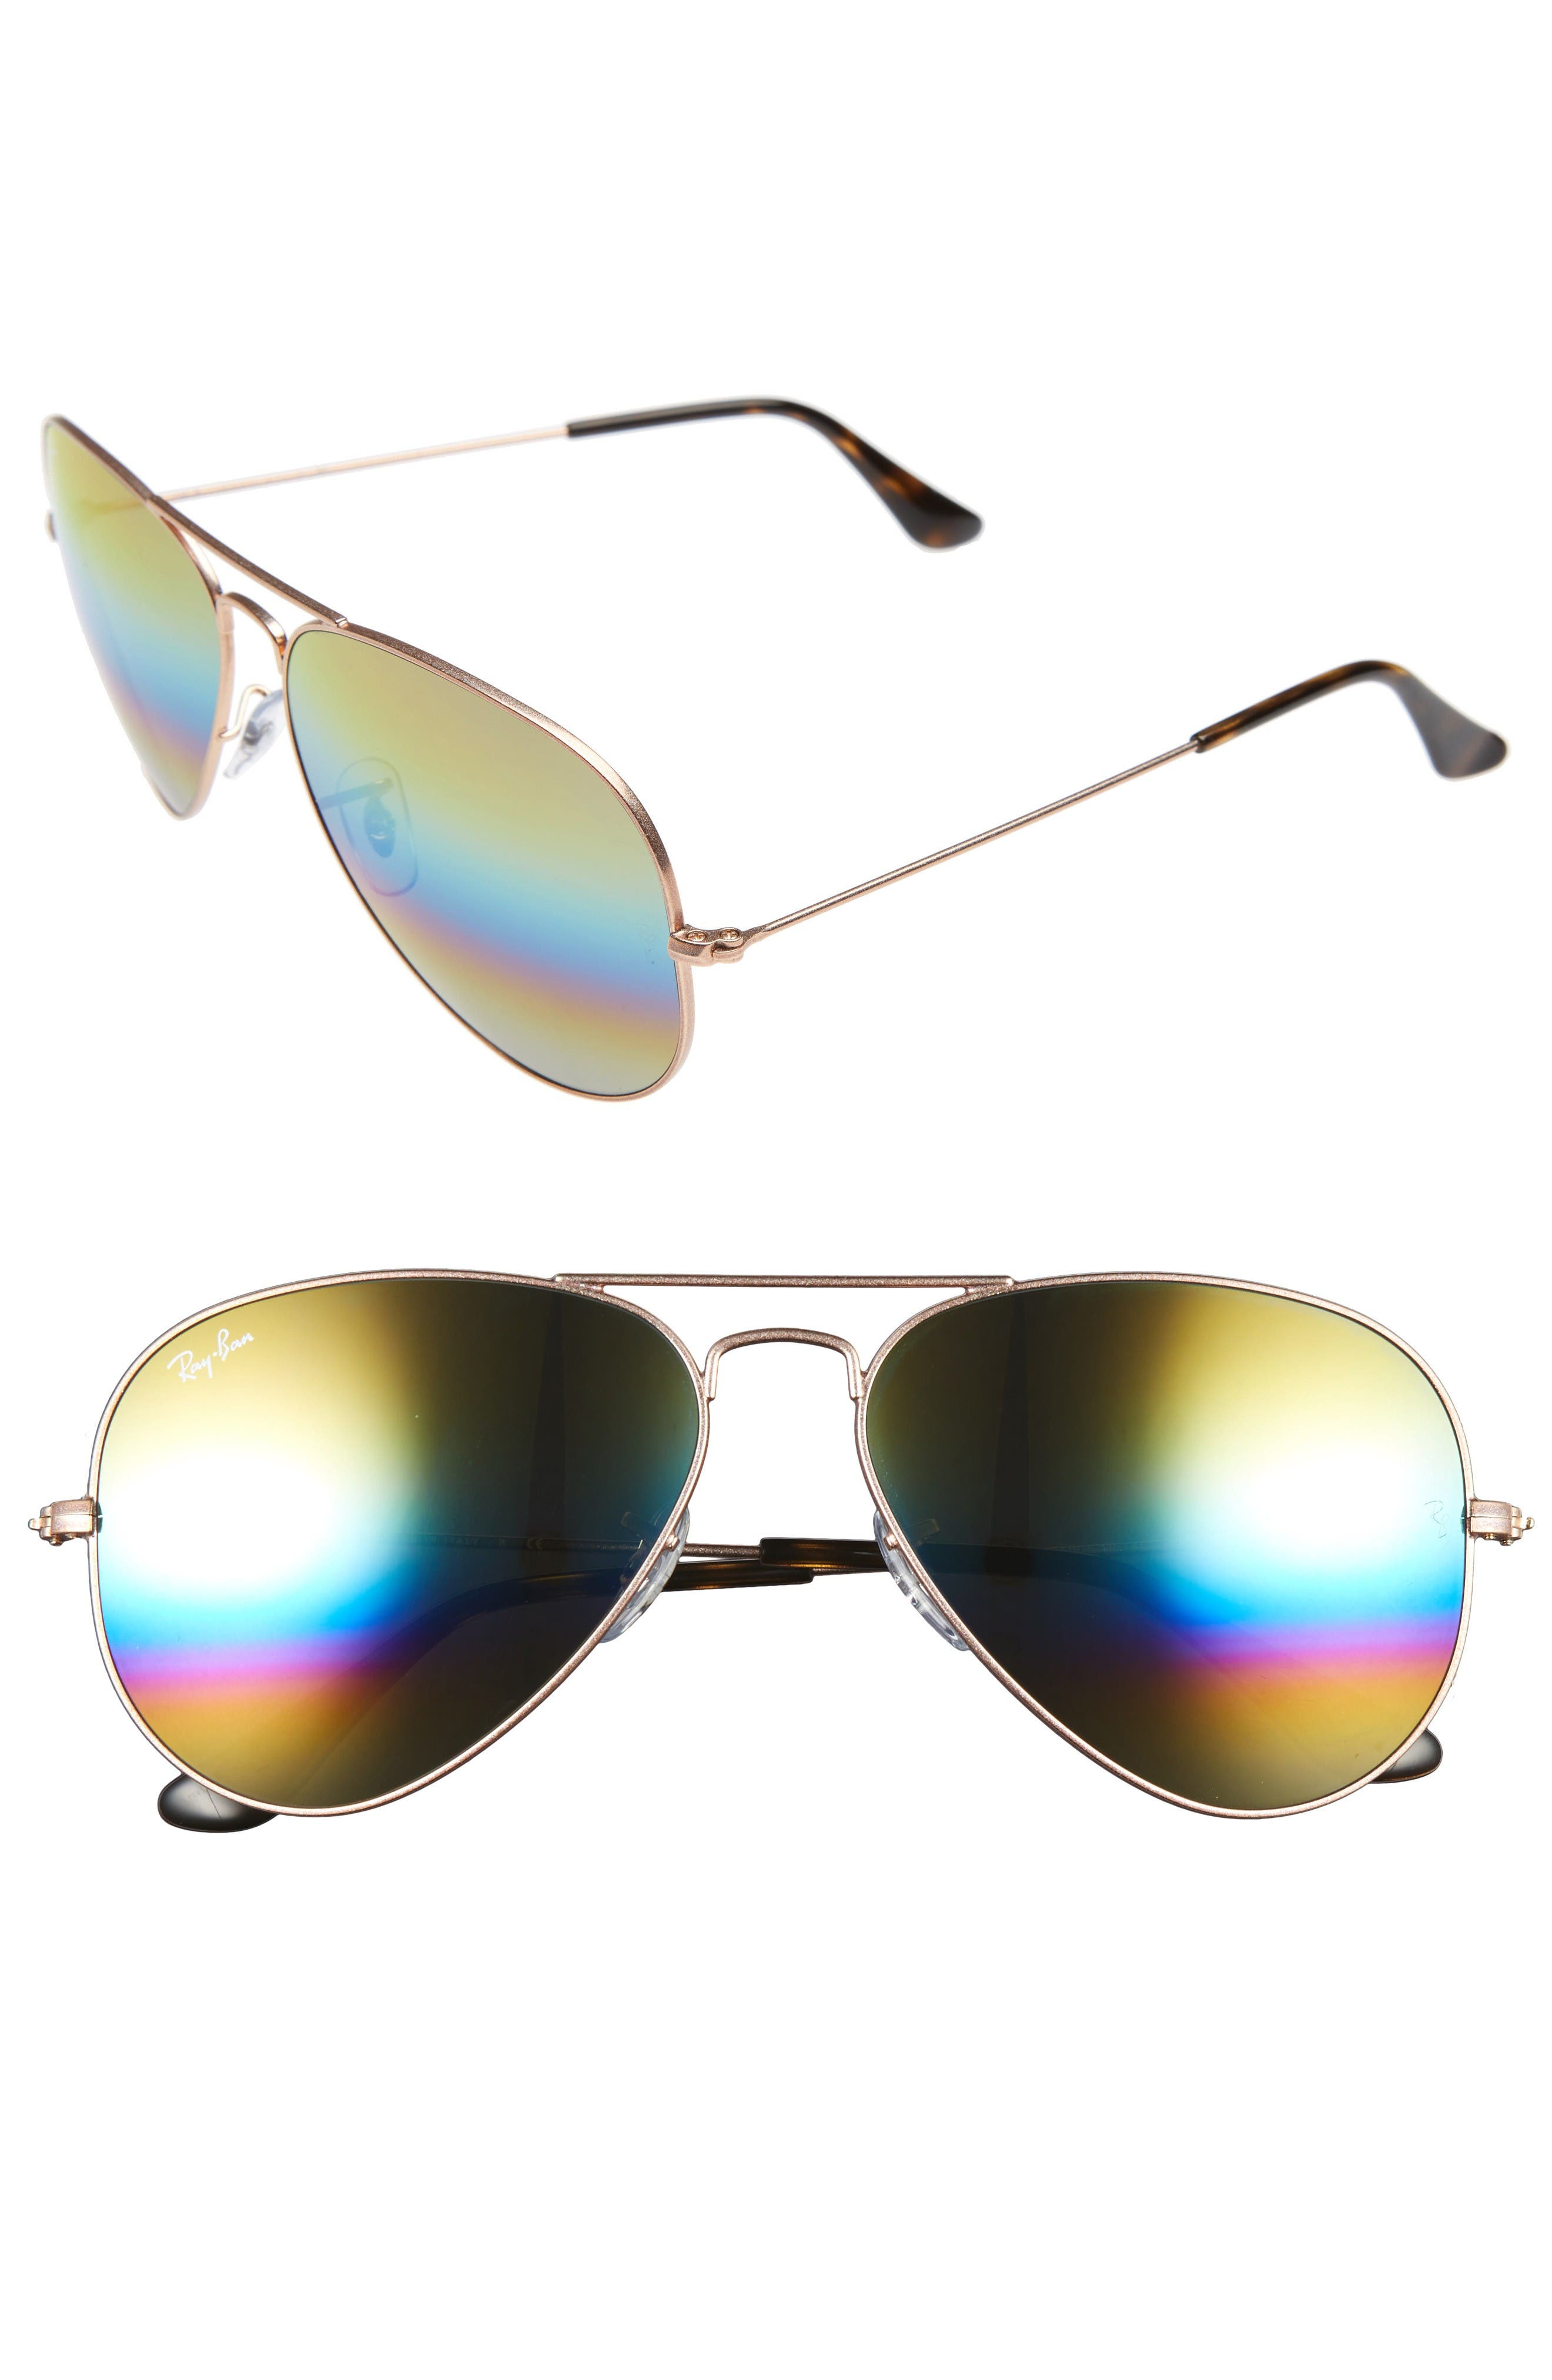 Main Image - Ray-Ban Large Icons 62mm Aviator Sunglasses